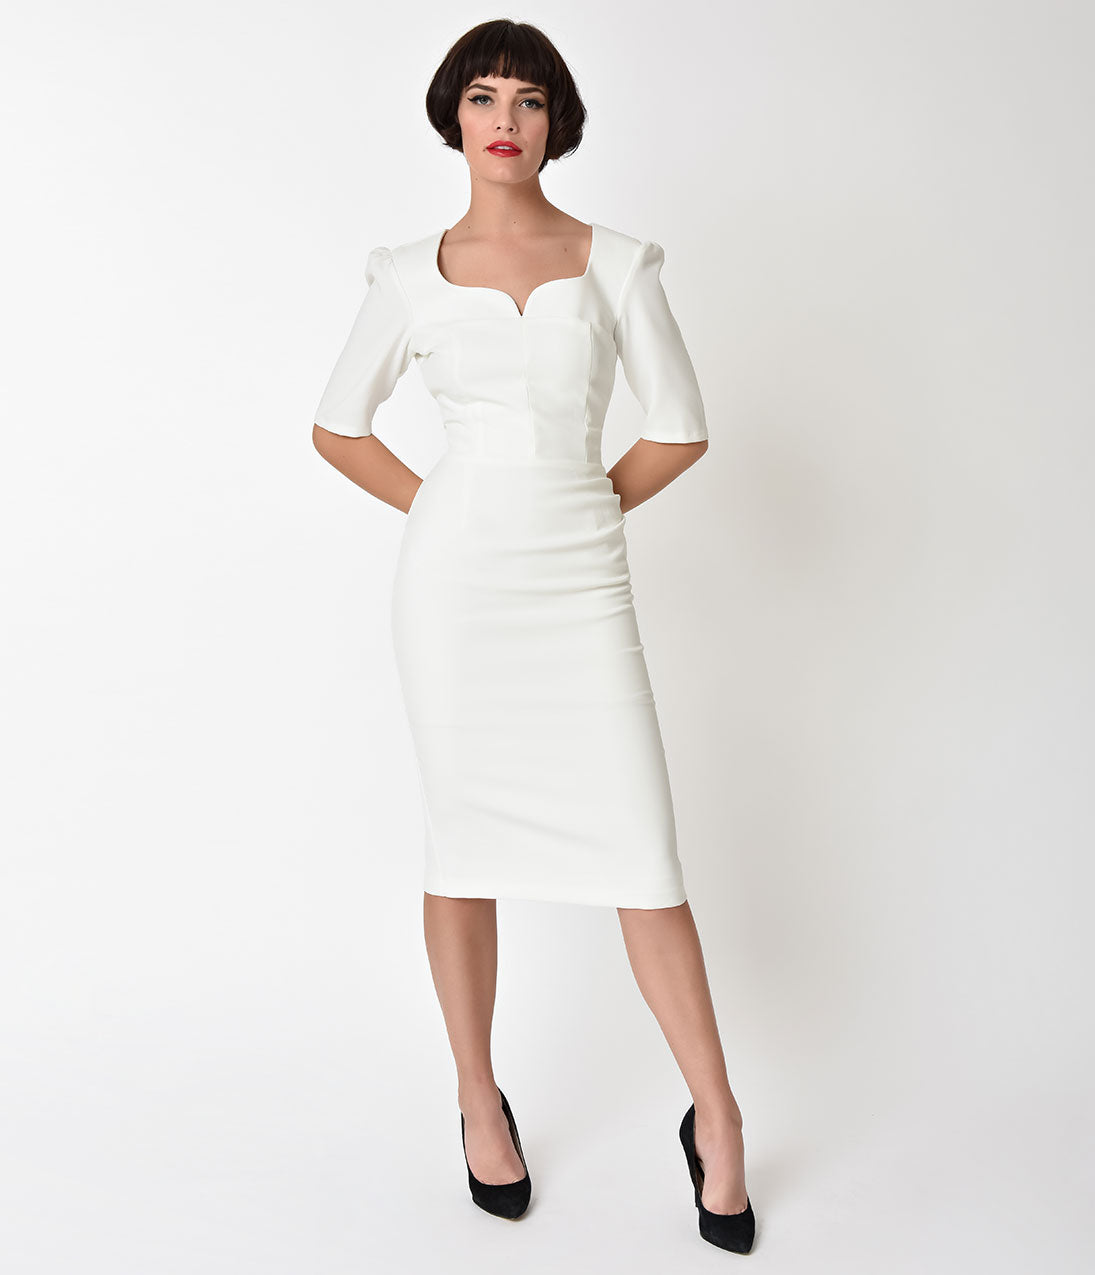 50s Wedding Dress, 1950s Style Wedding Dresses, Rockabilly Weddings The Pretty Dress Company Ivory Sleeved Charlotte Pencil Dress $88.00 AT vintagedancer.com